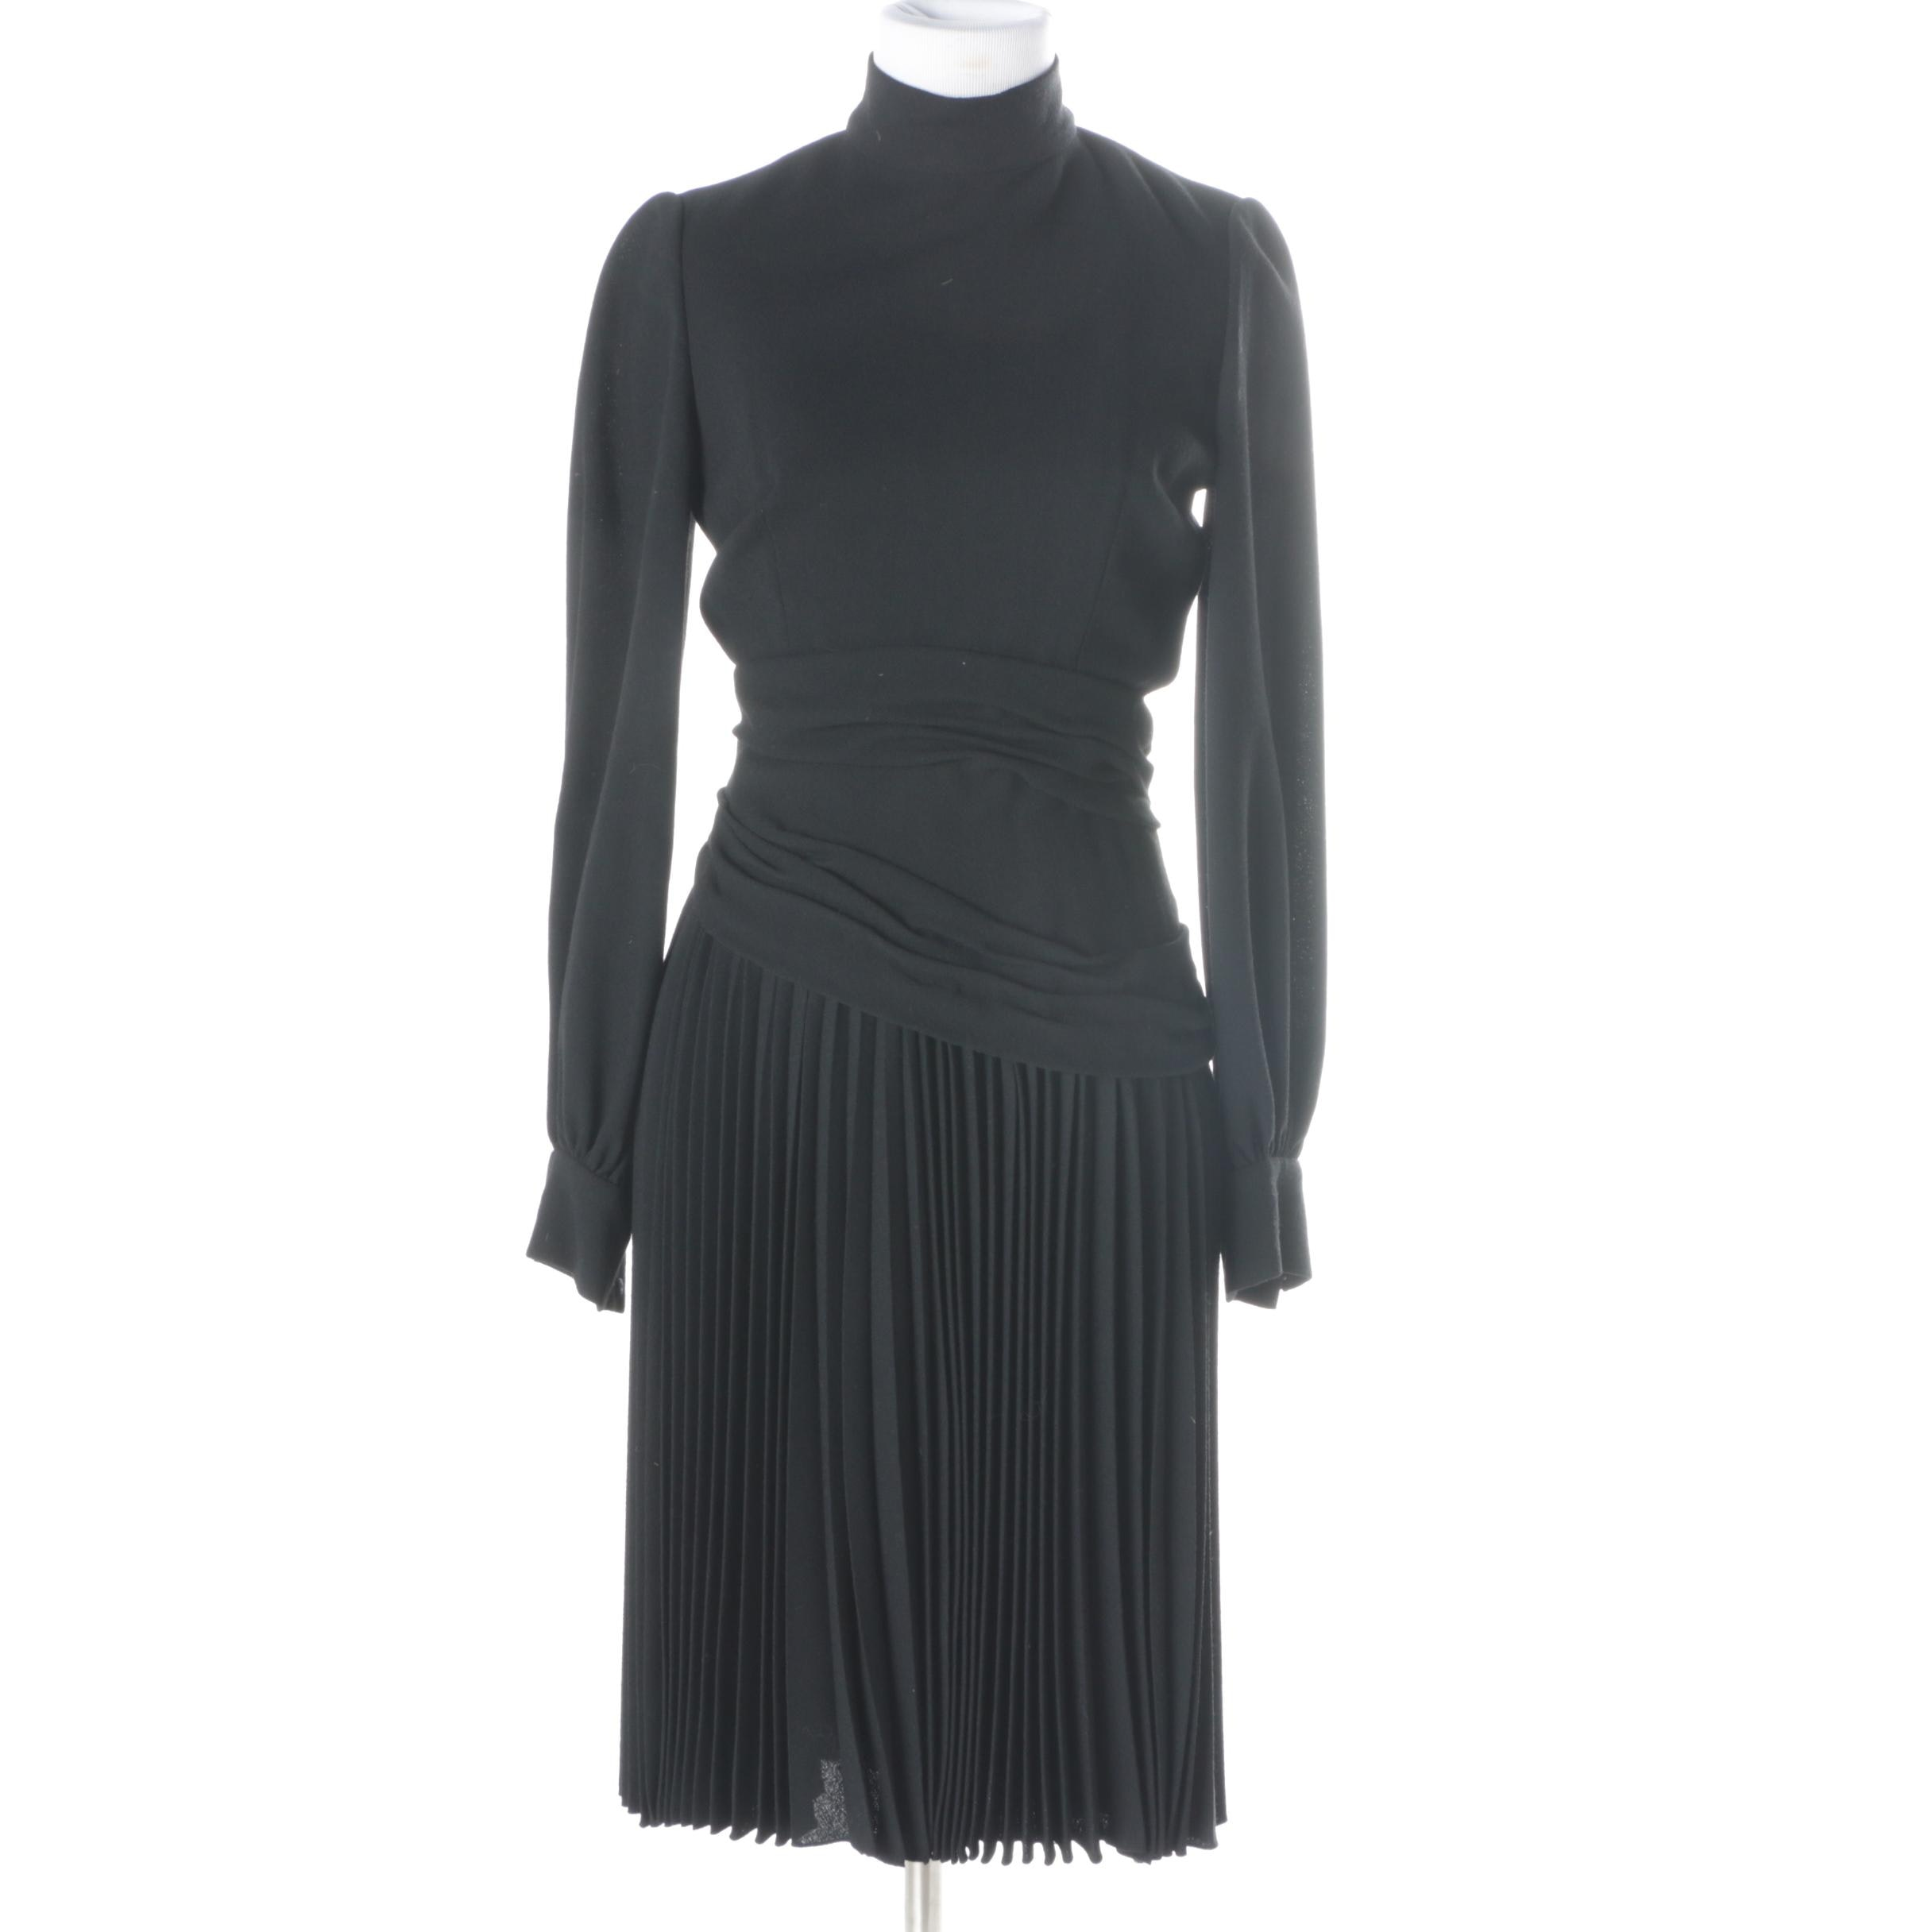 Vintage Cardinali Black Crepe Dress